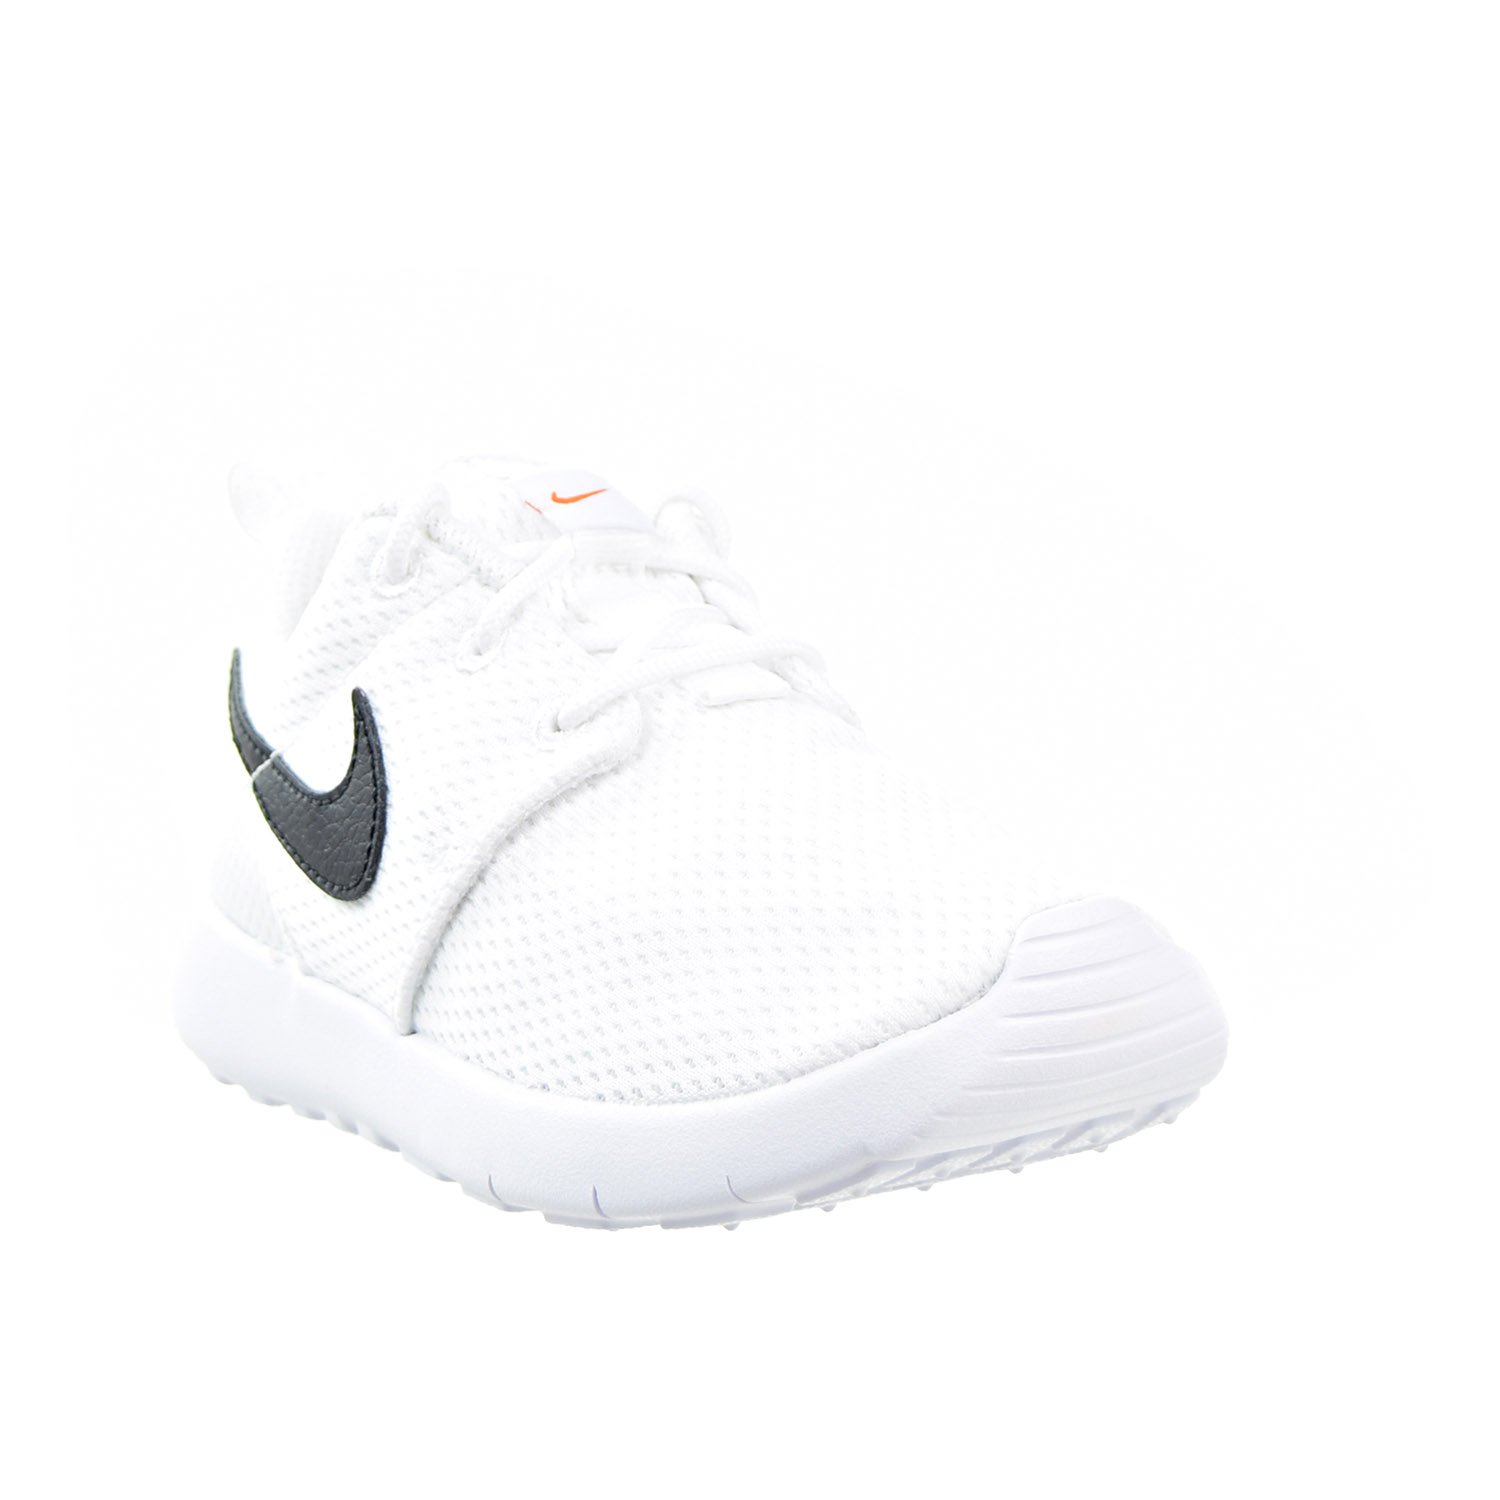 competitive price 24fb7 9260f Amazon.com  Nike Roshe one Little Kid (PS) Shoes WhiteBlack 749427-101   Running